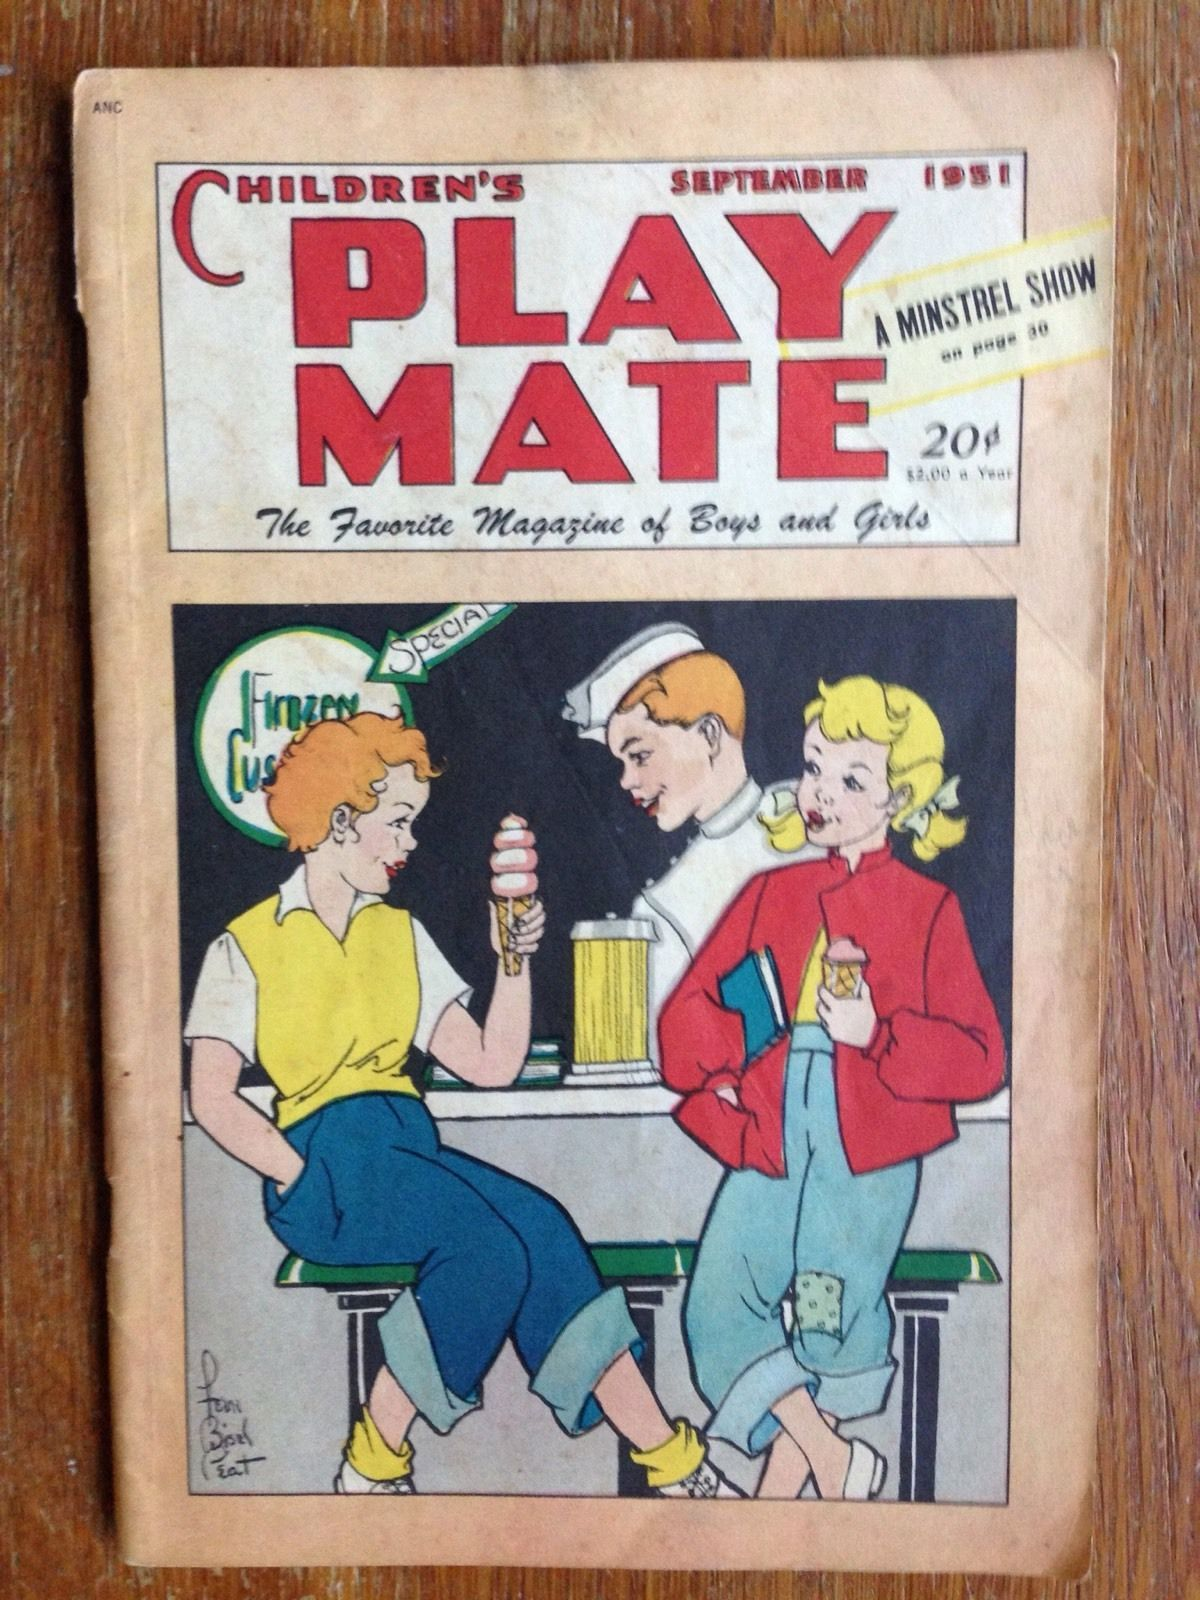 Vintage Children 039 S Play Mate Magazine September 1951 Ebay Kids Playing Vintage Children Childrens